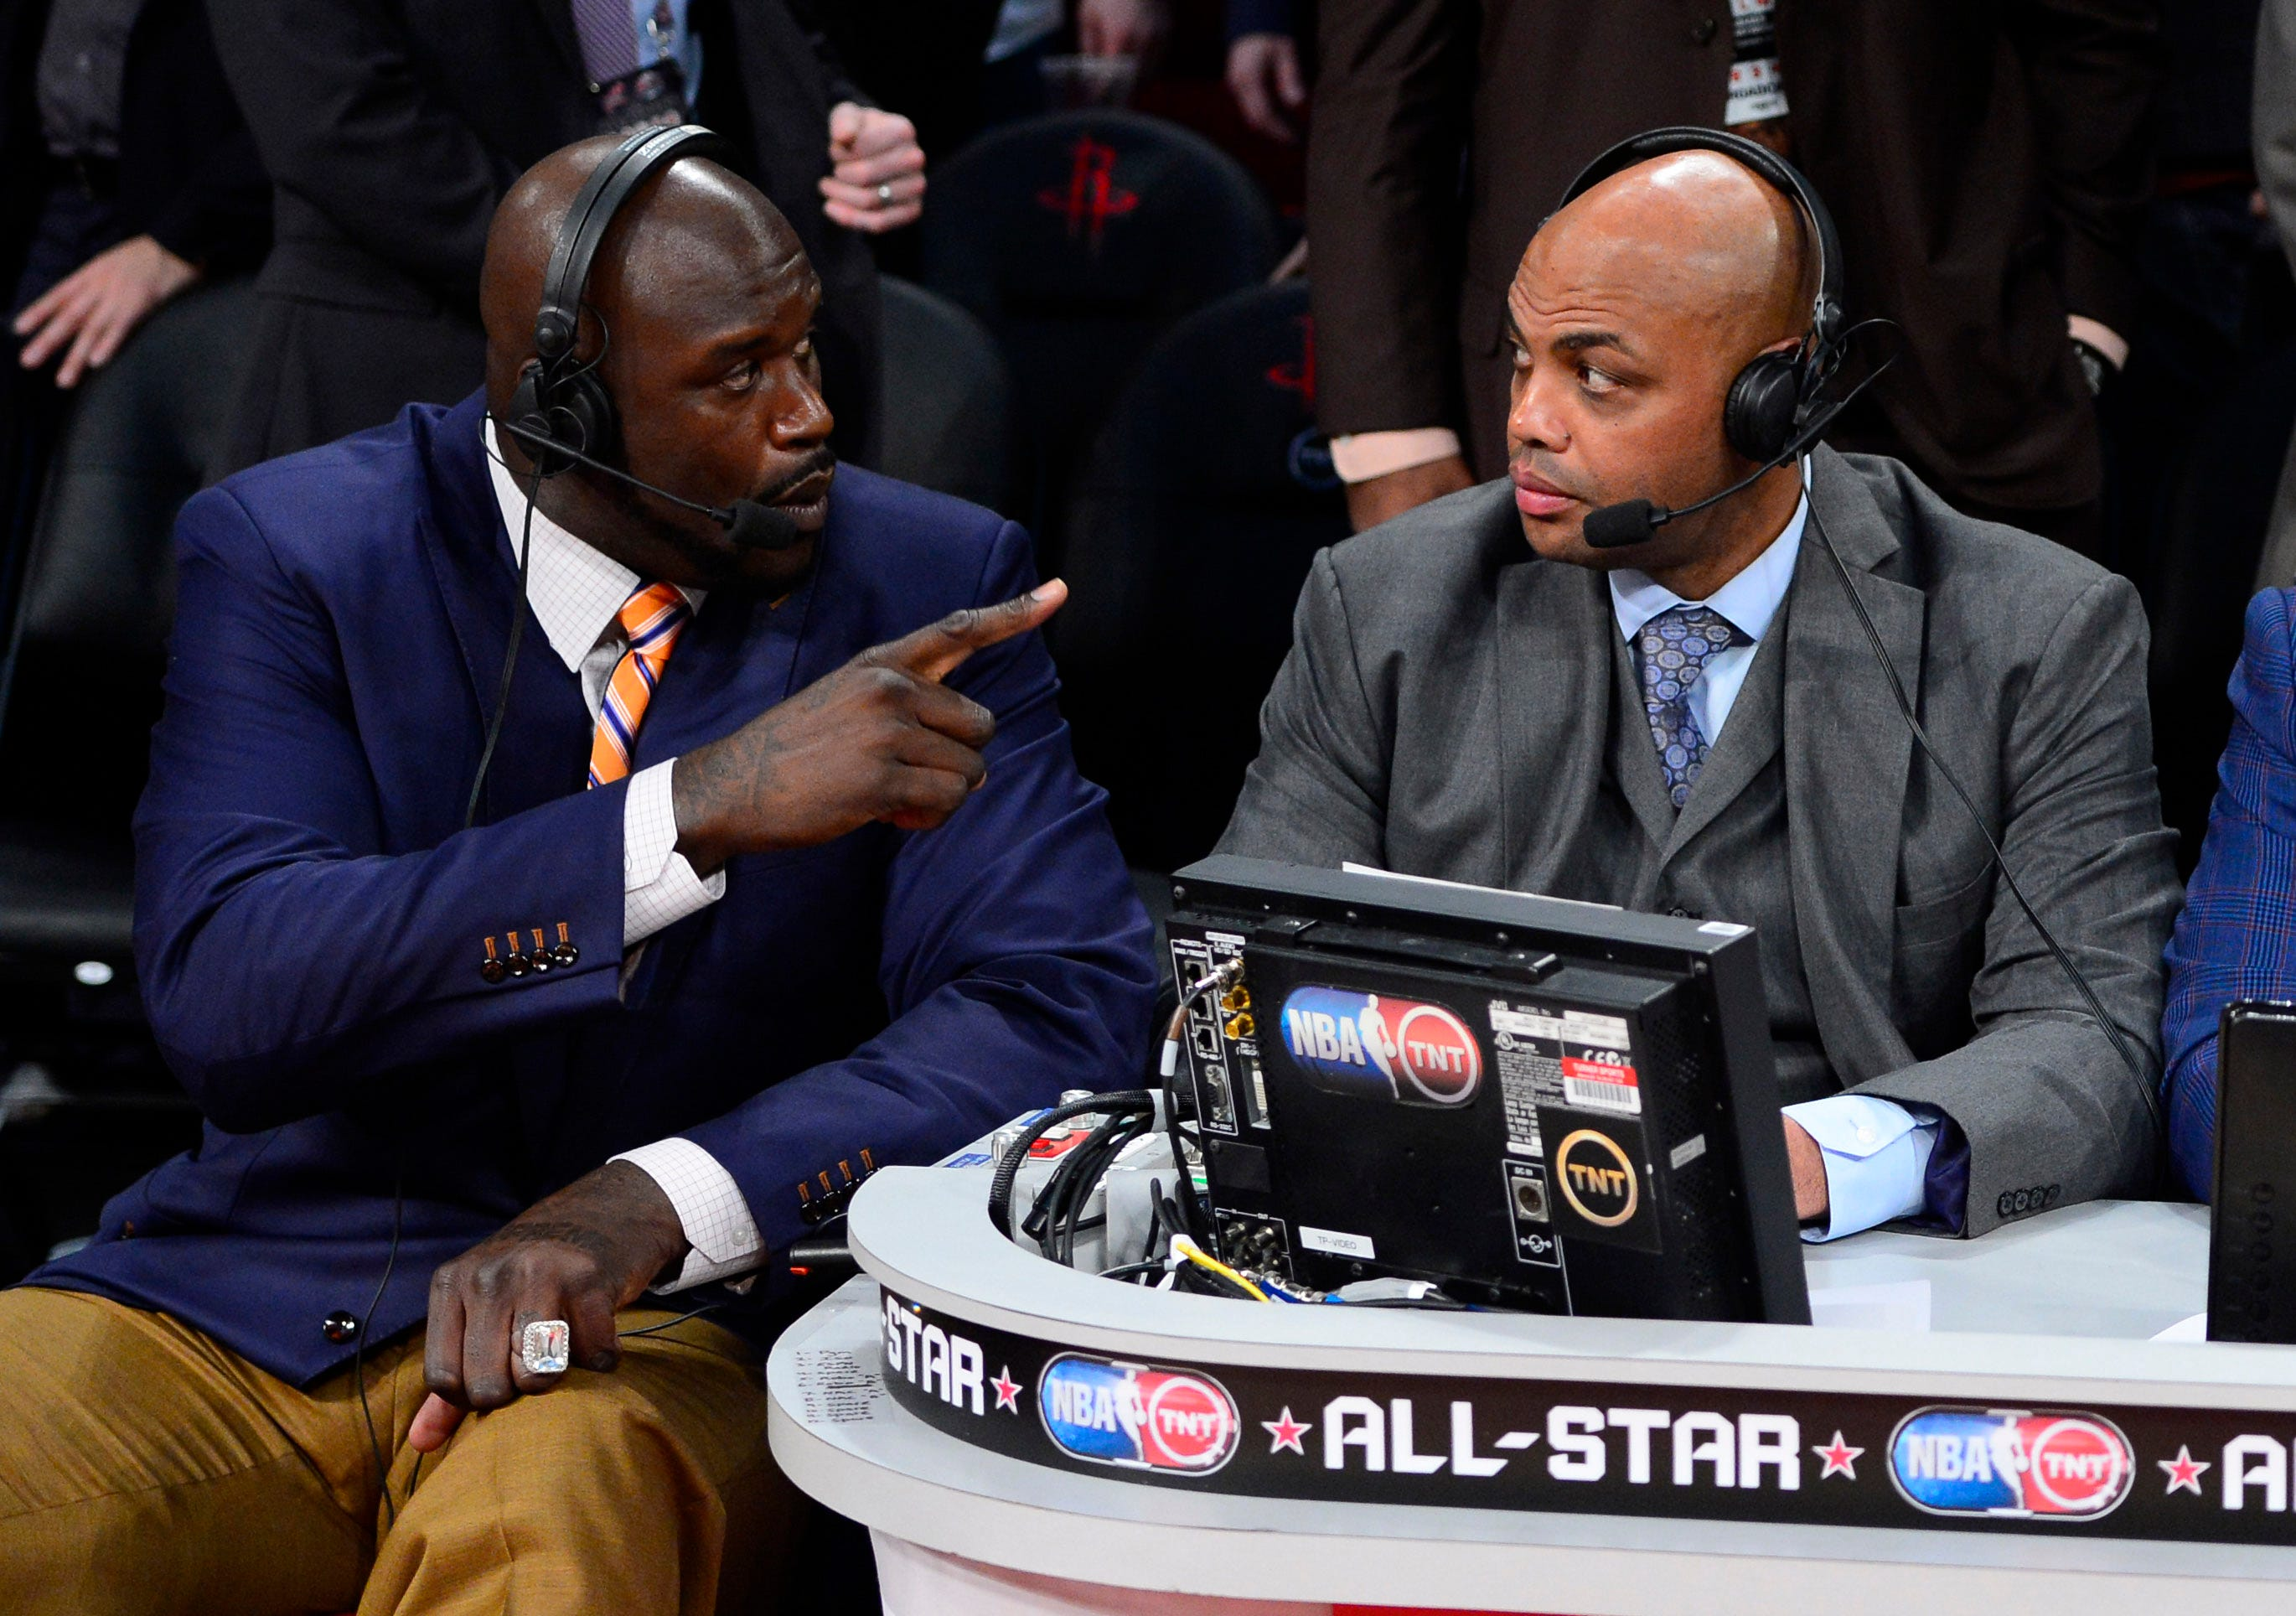 Charles Barkley, Shaquille O Neal join former President Barack Obama to encourage people to get COVID-19 vaccines